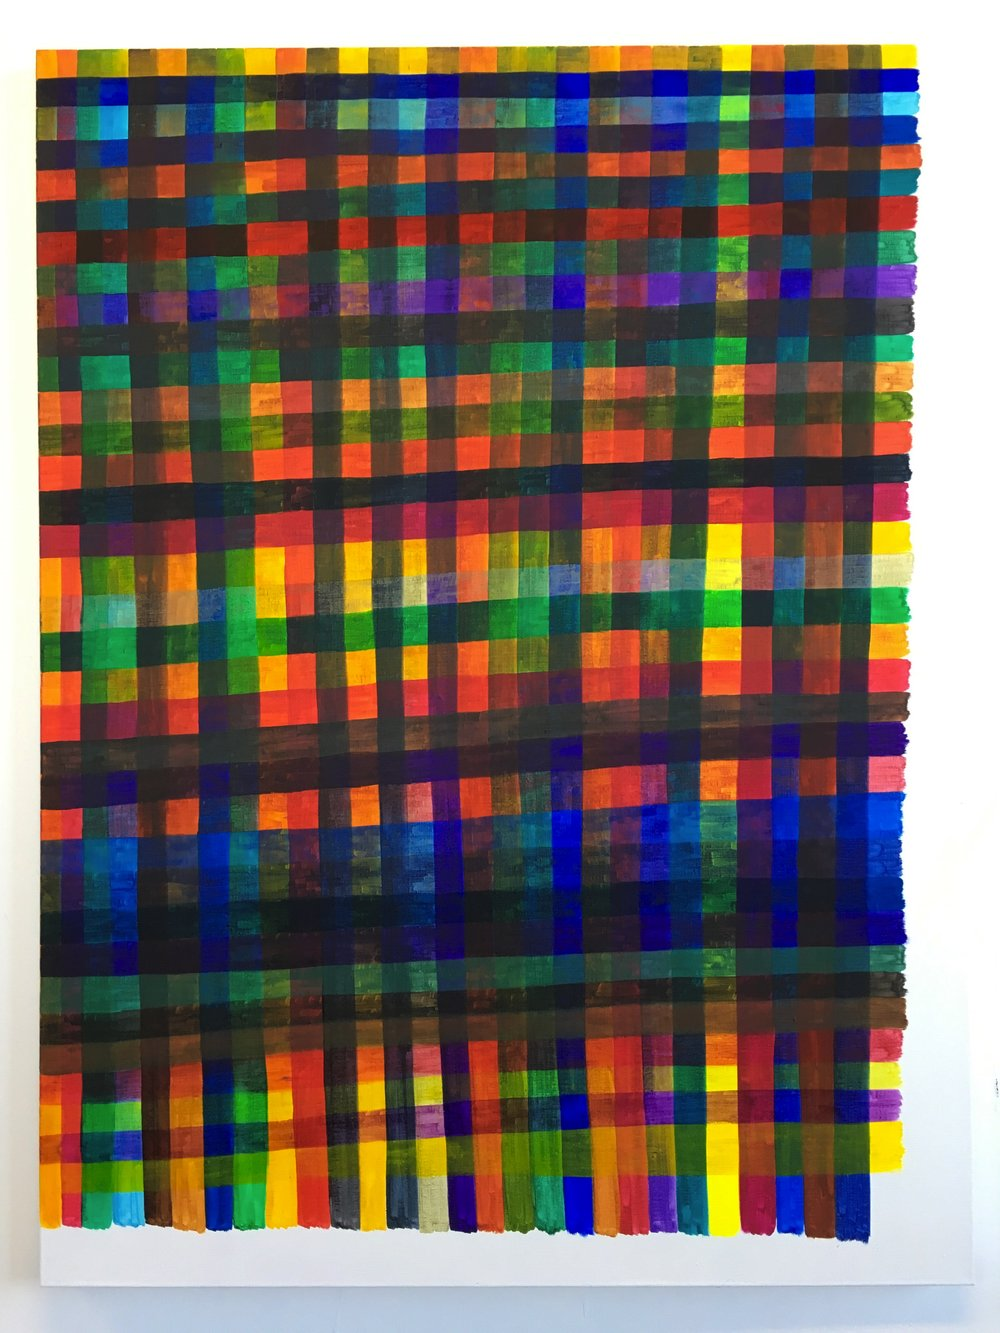 Renee Cosgrave, Lines,  (Transparent Colours) - Colour Chart , 2016, oil on linen, 122 x 91cm